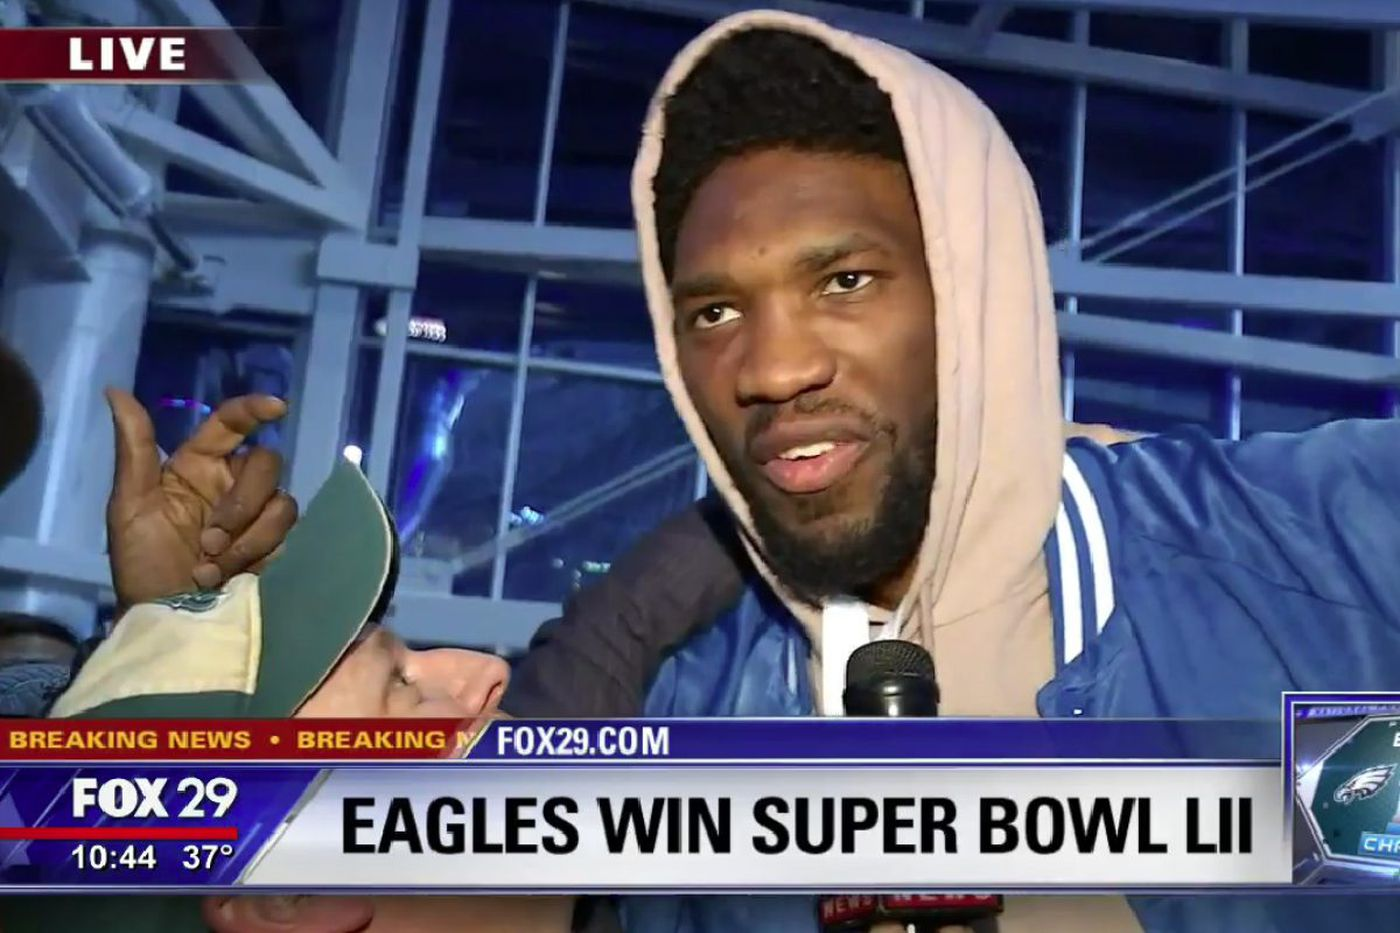 Joel Embiid crashes FOX 29's broadcast; NY Times gets winning Super Bowl team wrong